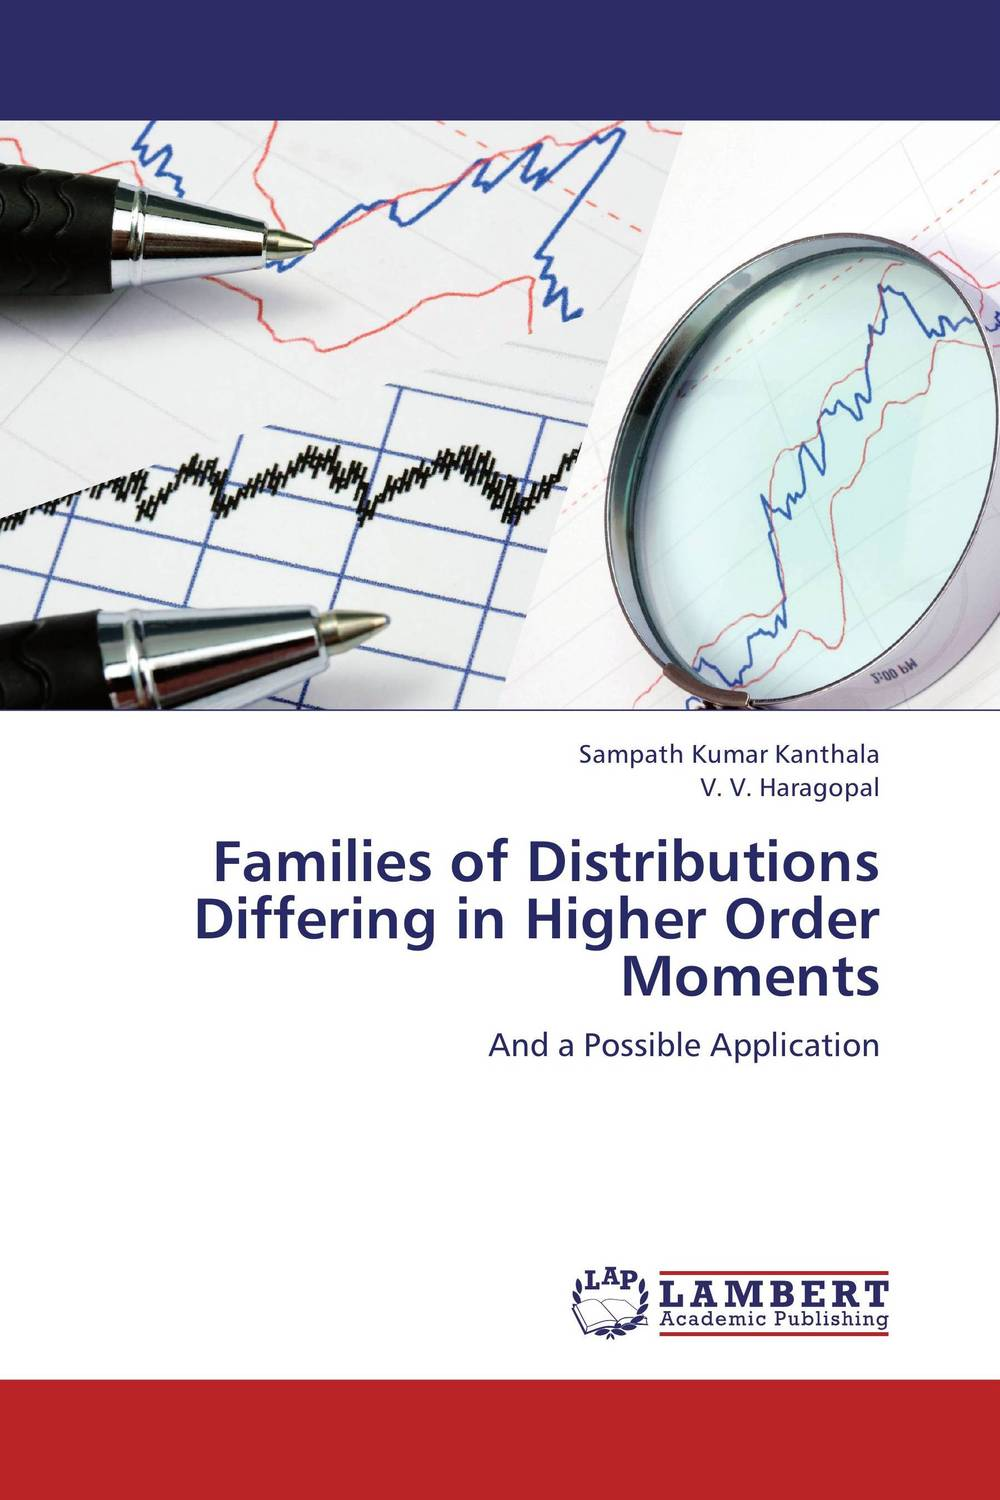 Families of Distributions Differing in Higher Order Moments gregorian masters of chant moments of peace in ireland